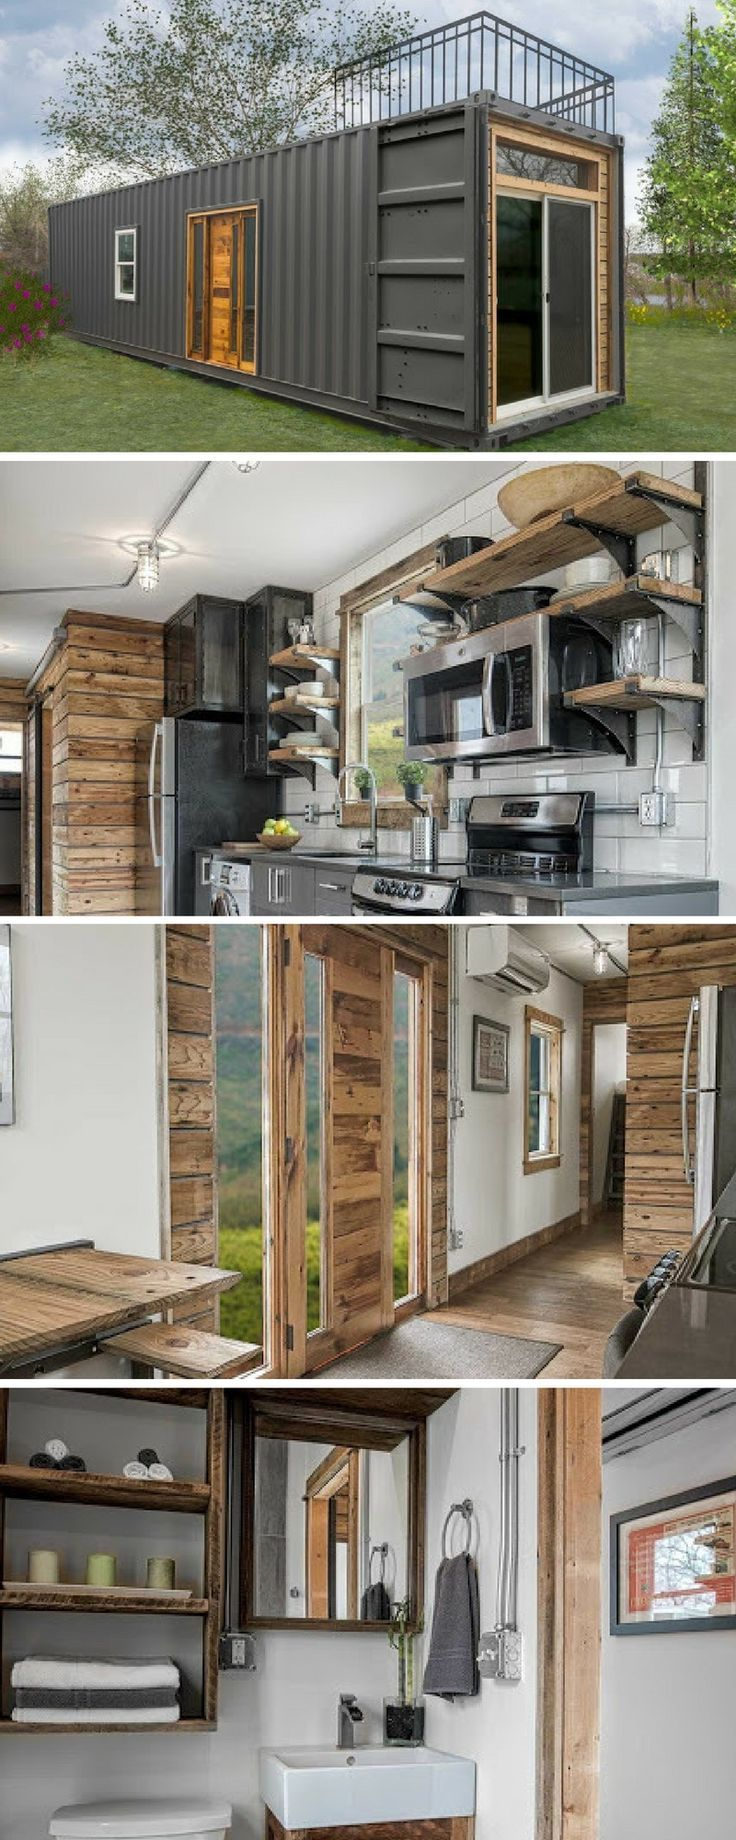 Cargo container homes on pinterest container houses - 105 Impressive Tiny Houses That Maximize Function And Style Container Cabincontainer Housesshipping Container Homesshipping